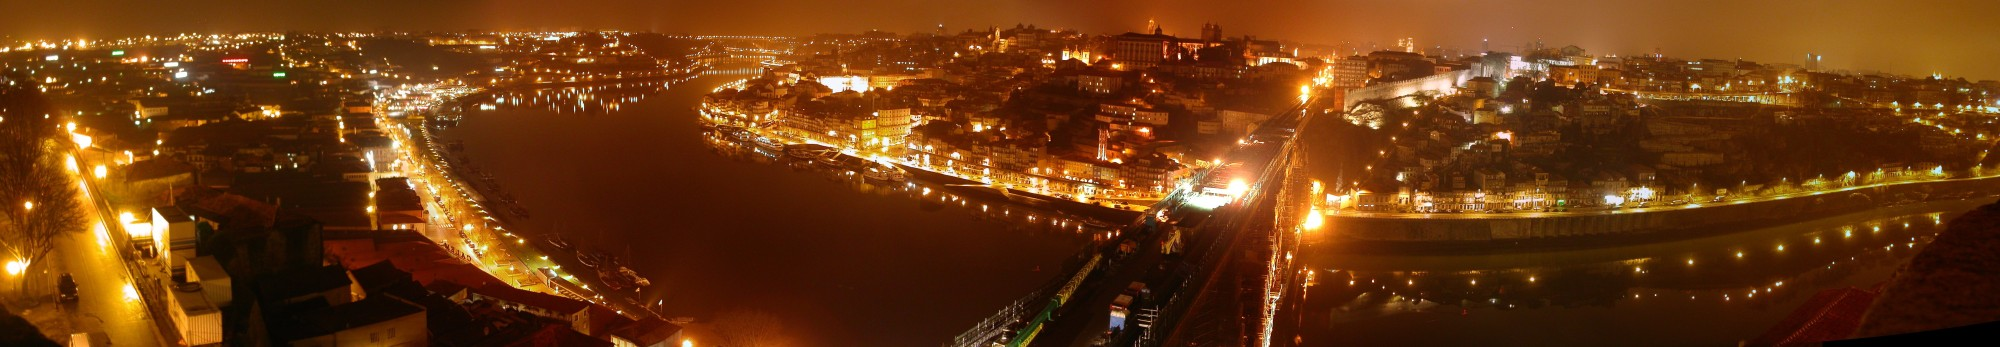 Porto nightscape